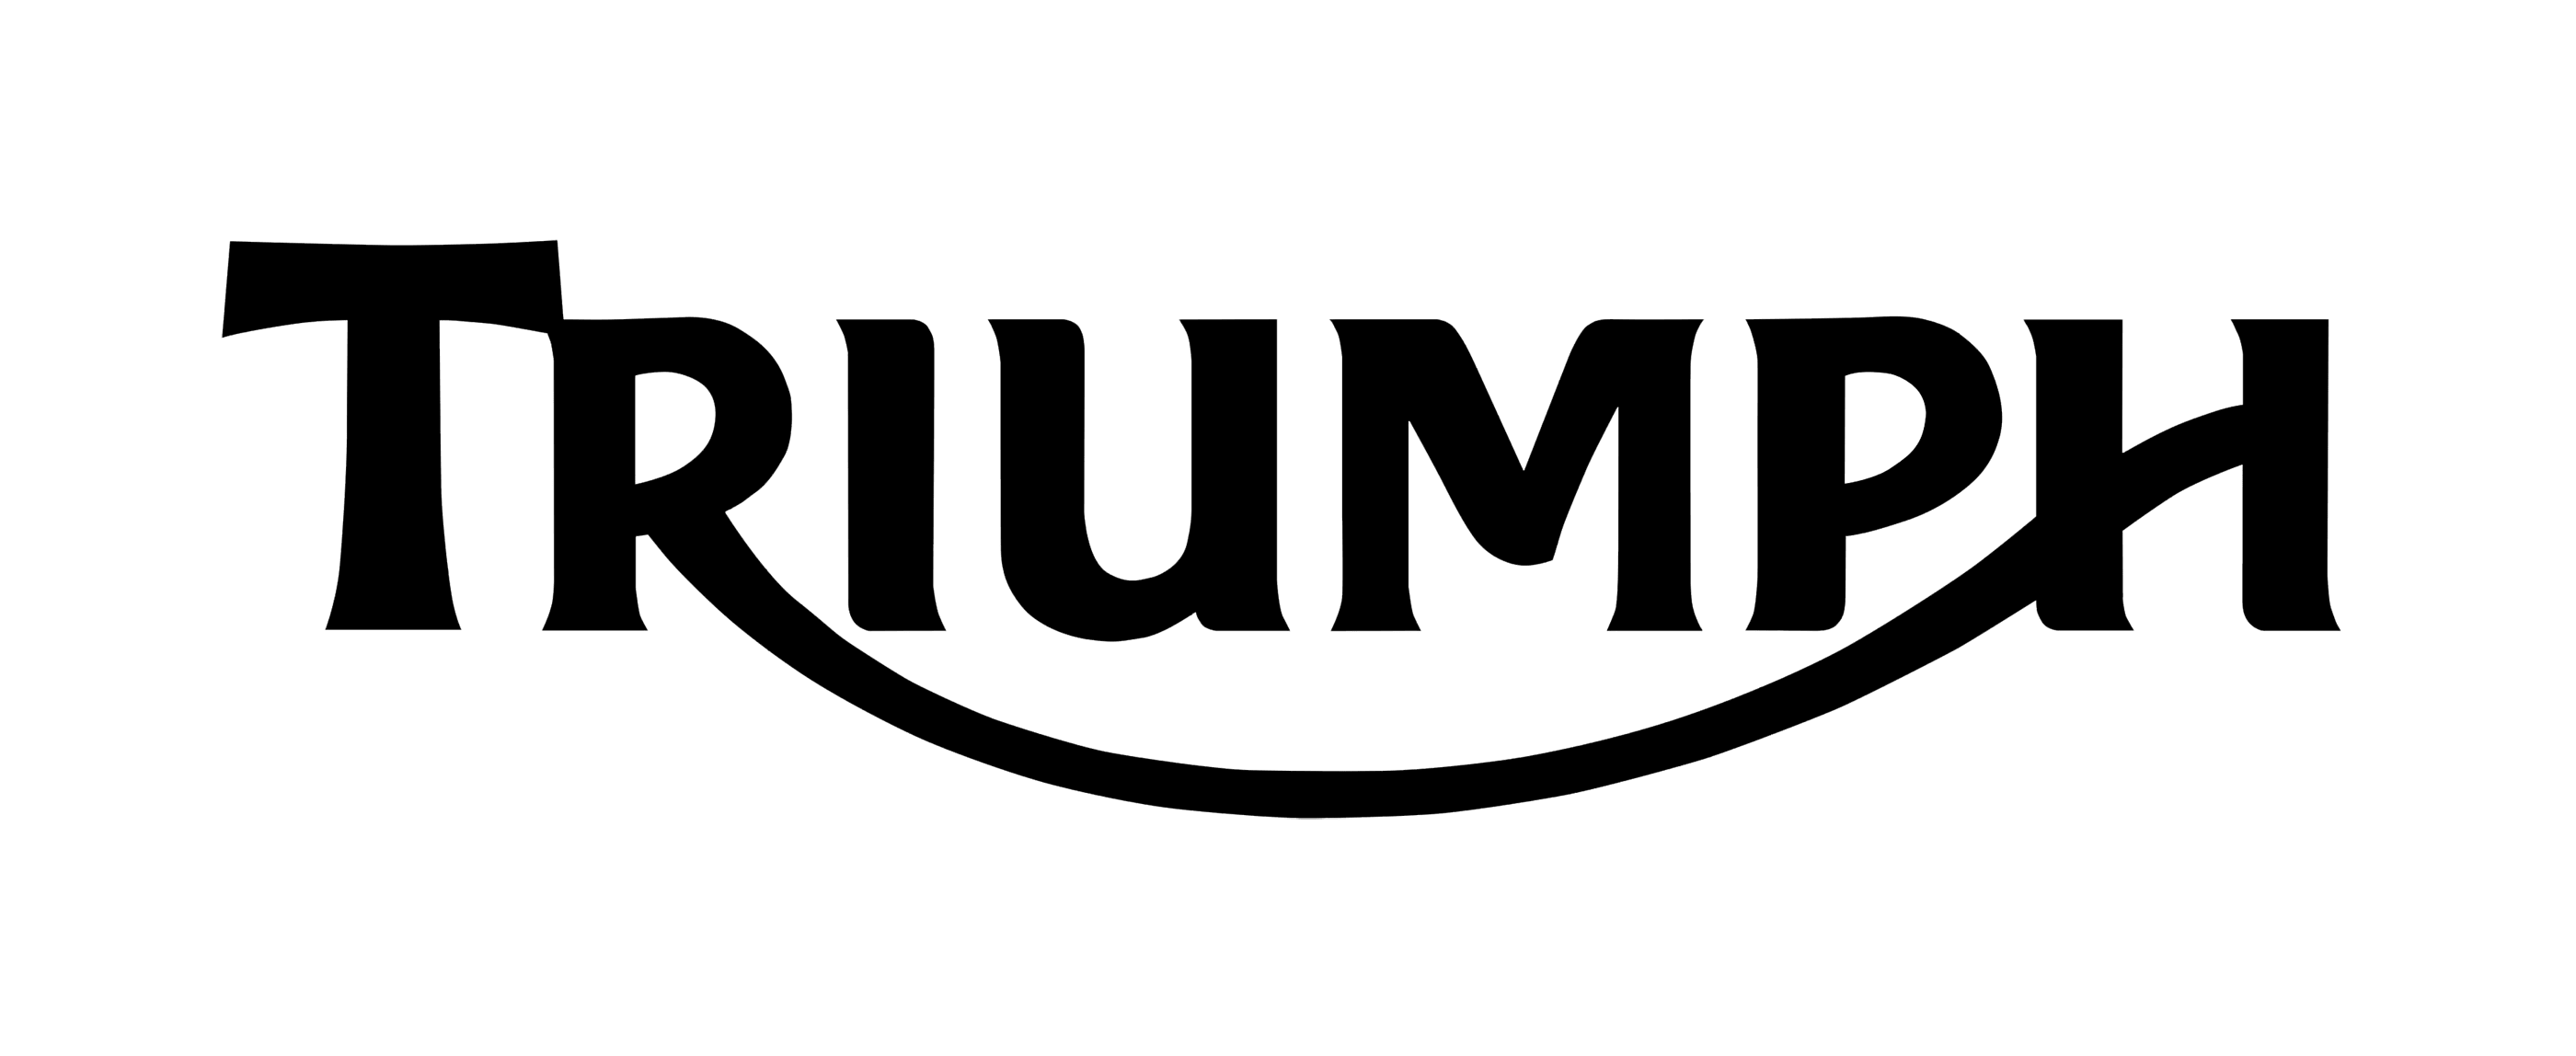 triumph logo history  meaning motorcycle brands motorcycle logos for t shirts motorcycle logos and names list